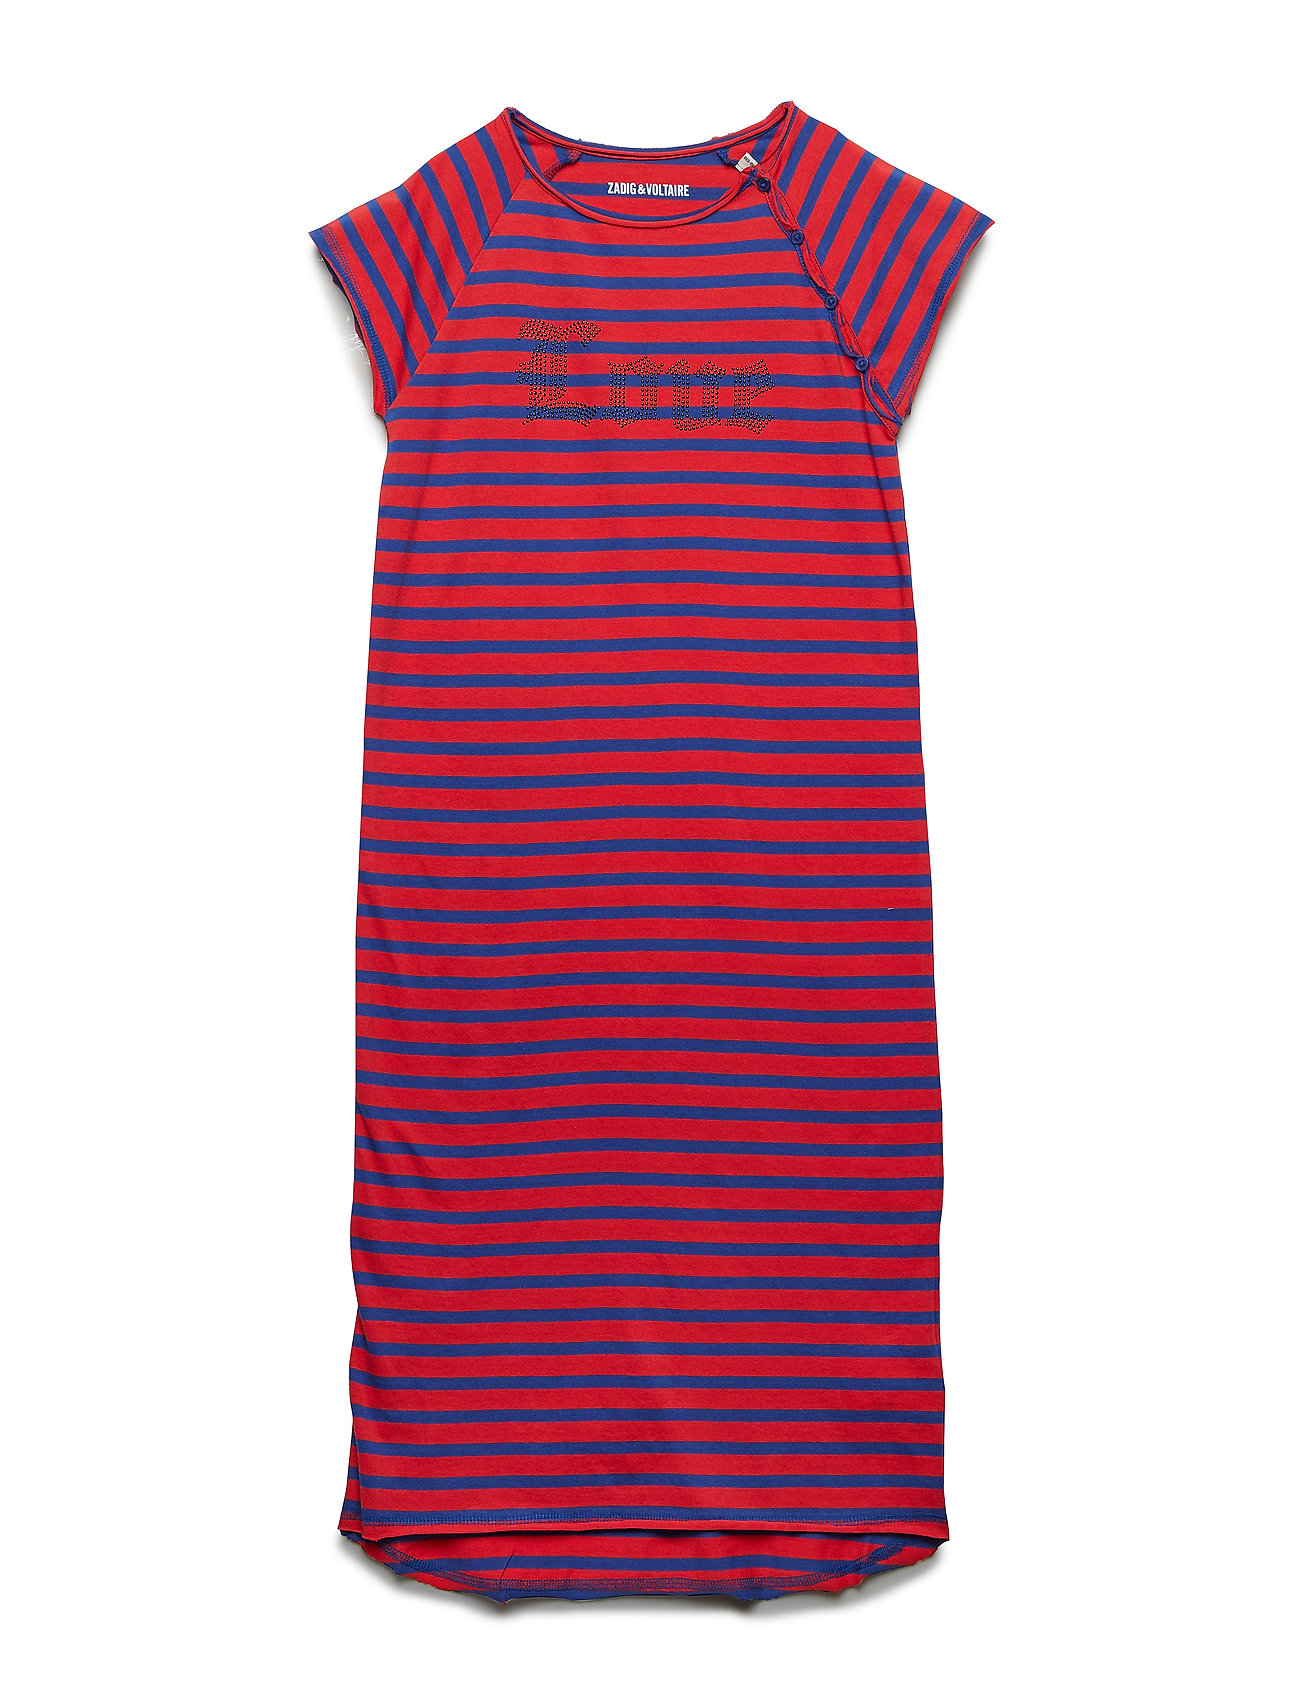 Zadig & Voltaire Kids DRESS - RED/BLUE